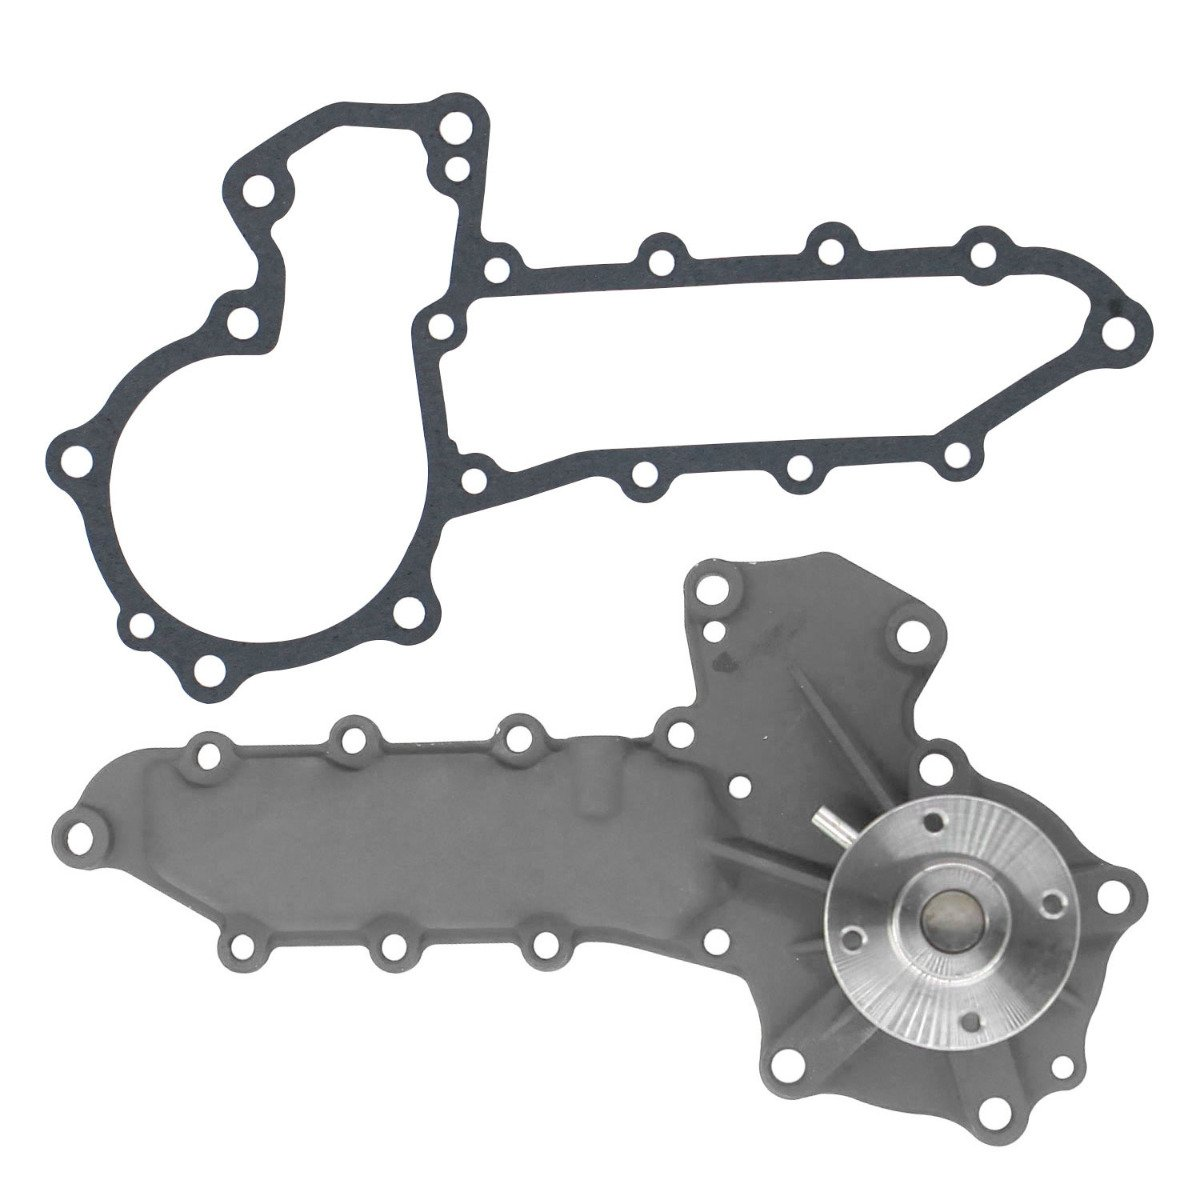 Water Pump 80503180 Compatible with Case Skid Steer Loader 1838